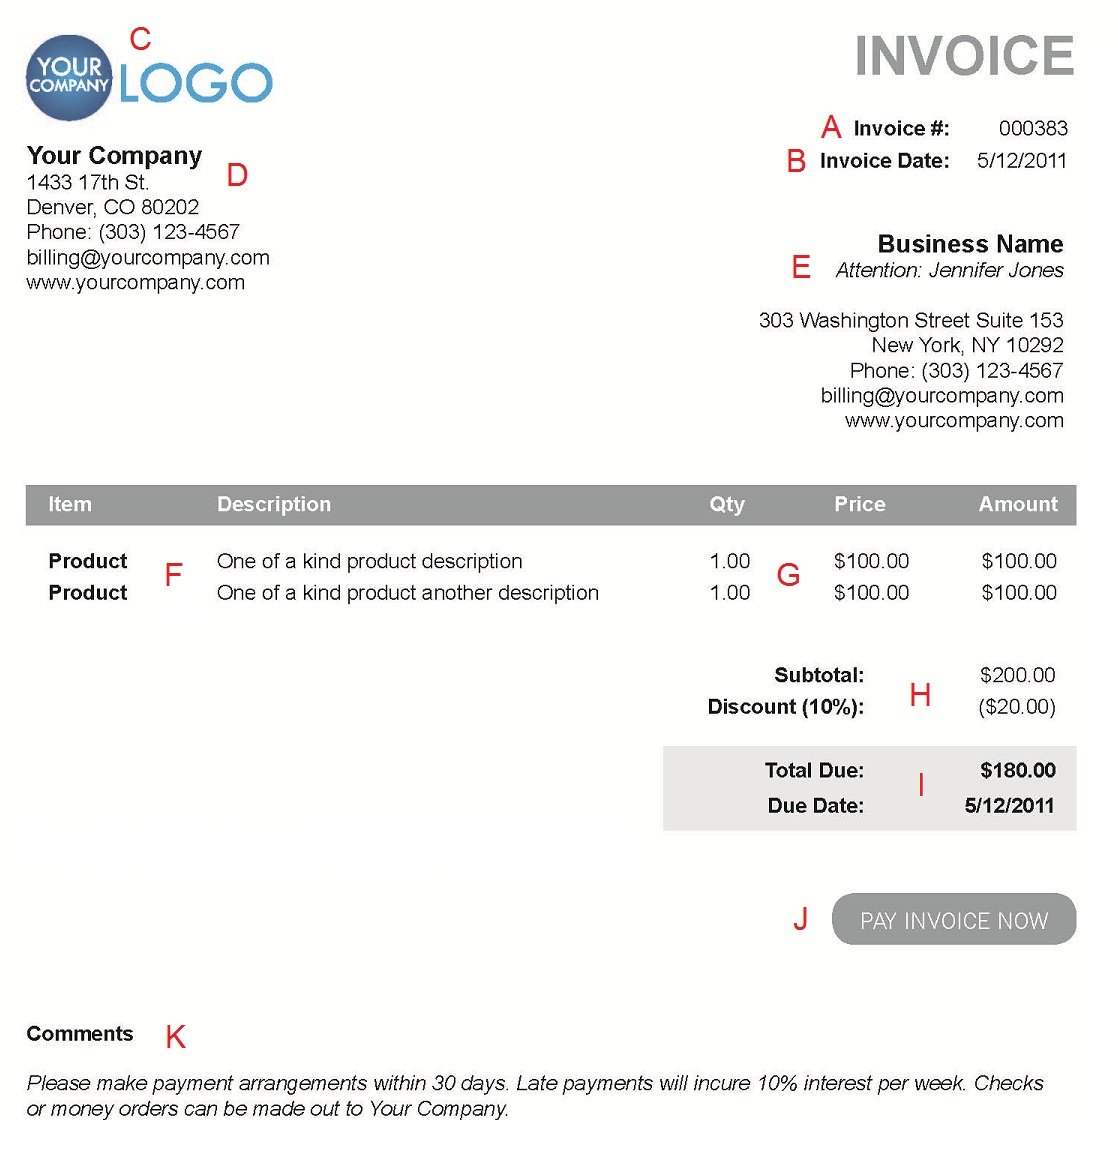 Opposenewapstandardsus  Remarkable The  Different Sections Of An Electronic Payment Invoice With Fascinating A  With Awesome Dummy Receipt Also Template For Sales Receipt In Addition File Receipts And Meatball Receipts As Well As Constructive Receipt Rule Additionally Best Receipt Scanner Software From Paysimplecom With Opposenewapstandardsus  Fascinating The  Different Sections Of An Electronic Payment Invoice With Awesome A  And Remarkable Dummy Receipt Also Template For Sales Receipt In Addition File Receipts From Paysimplecom